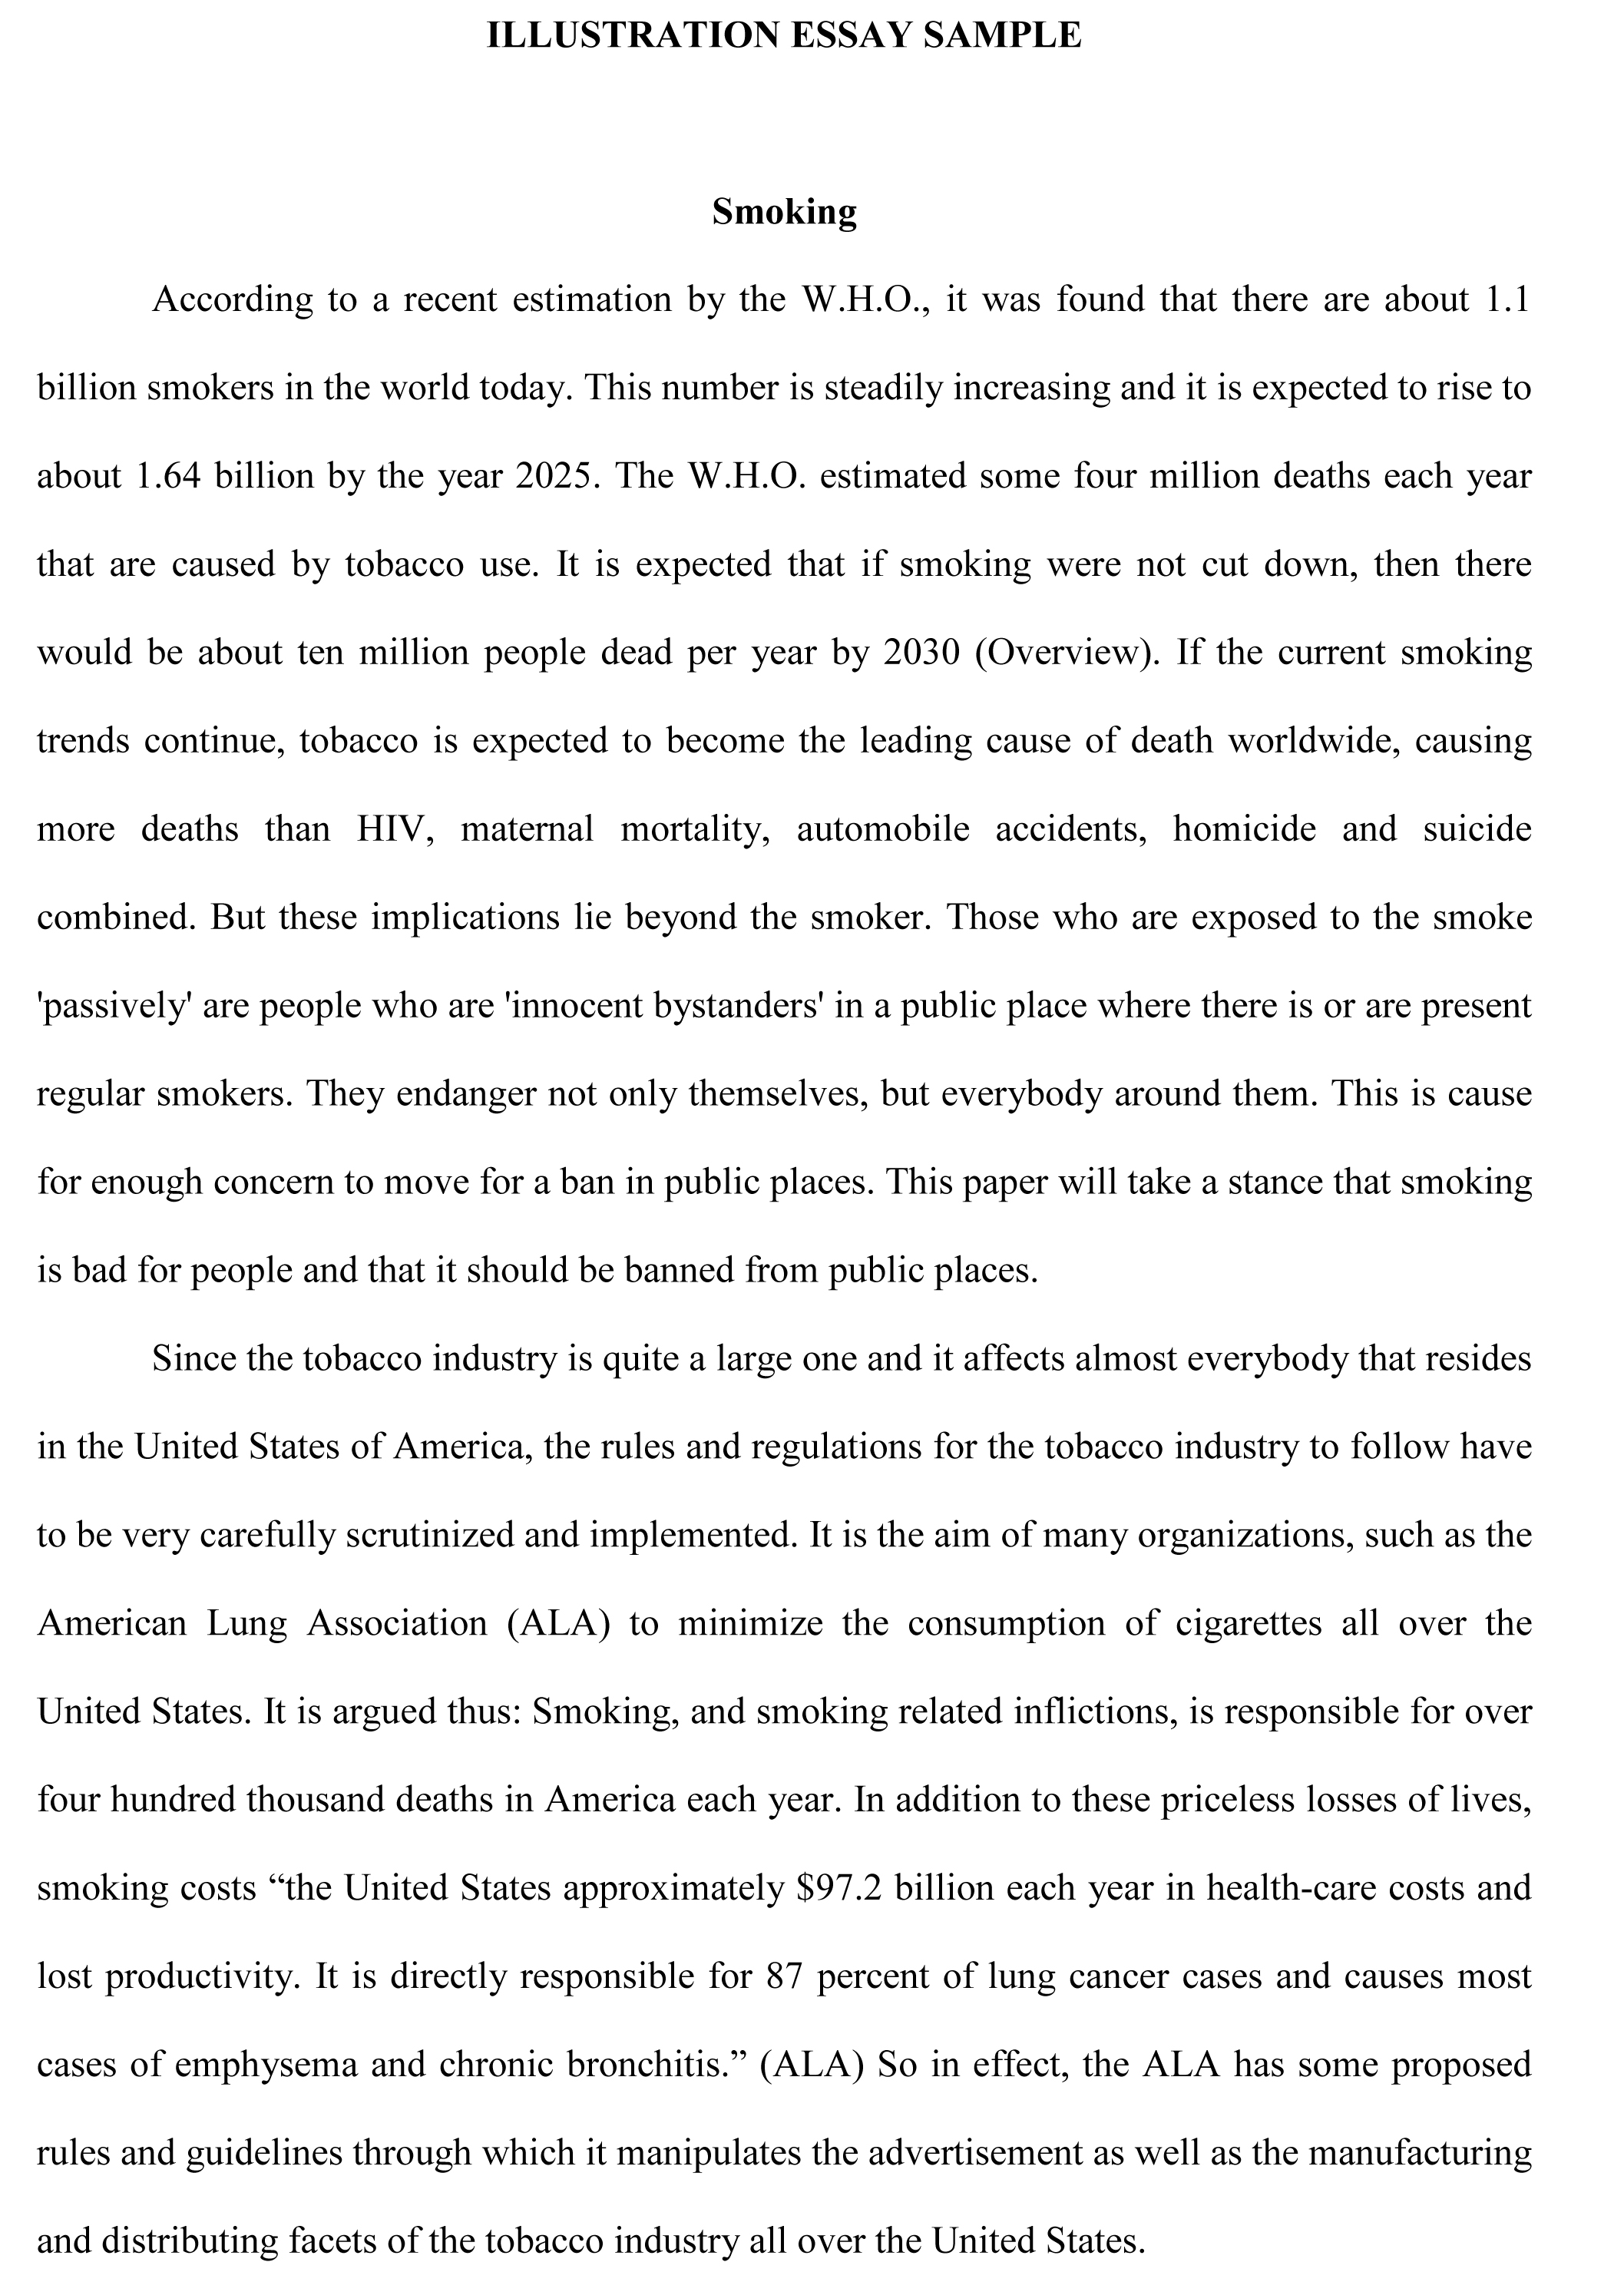 026 Illustration Essay Sample How To Write An Autobiography Fearsome Autobiographical For Graduate School Biography Full